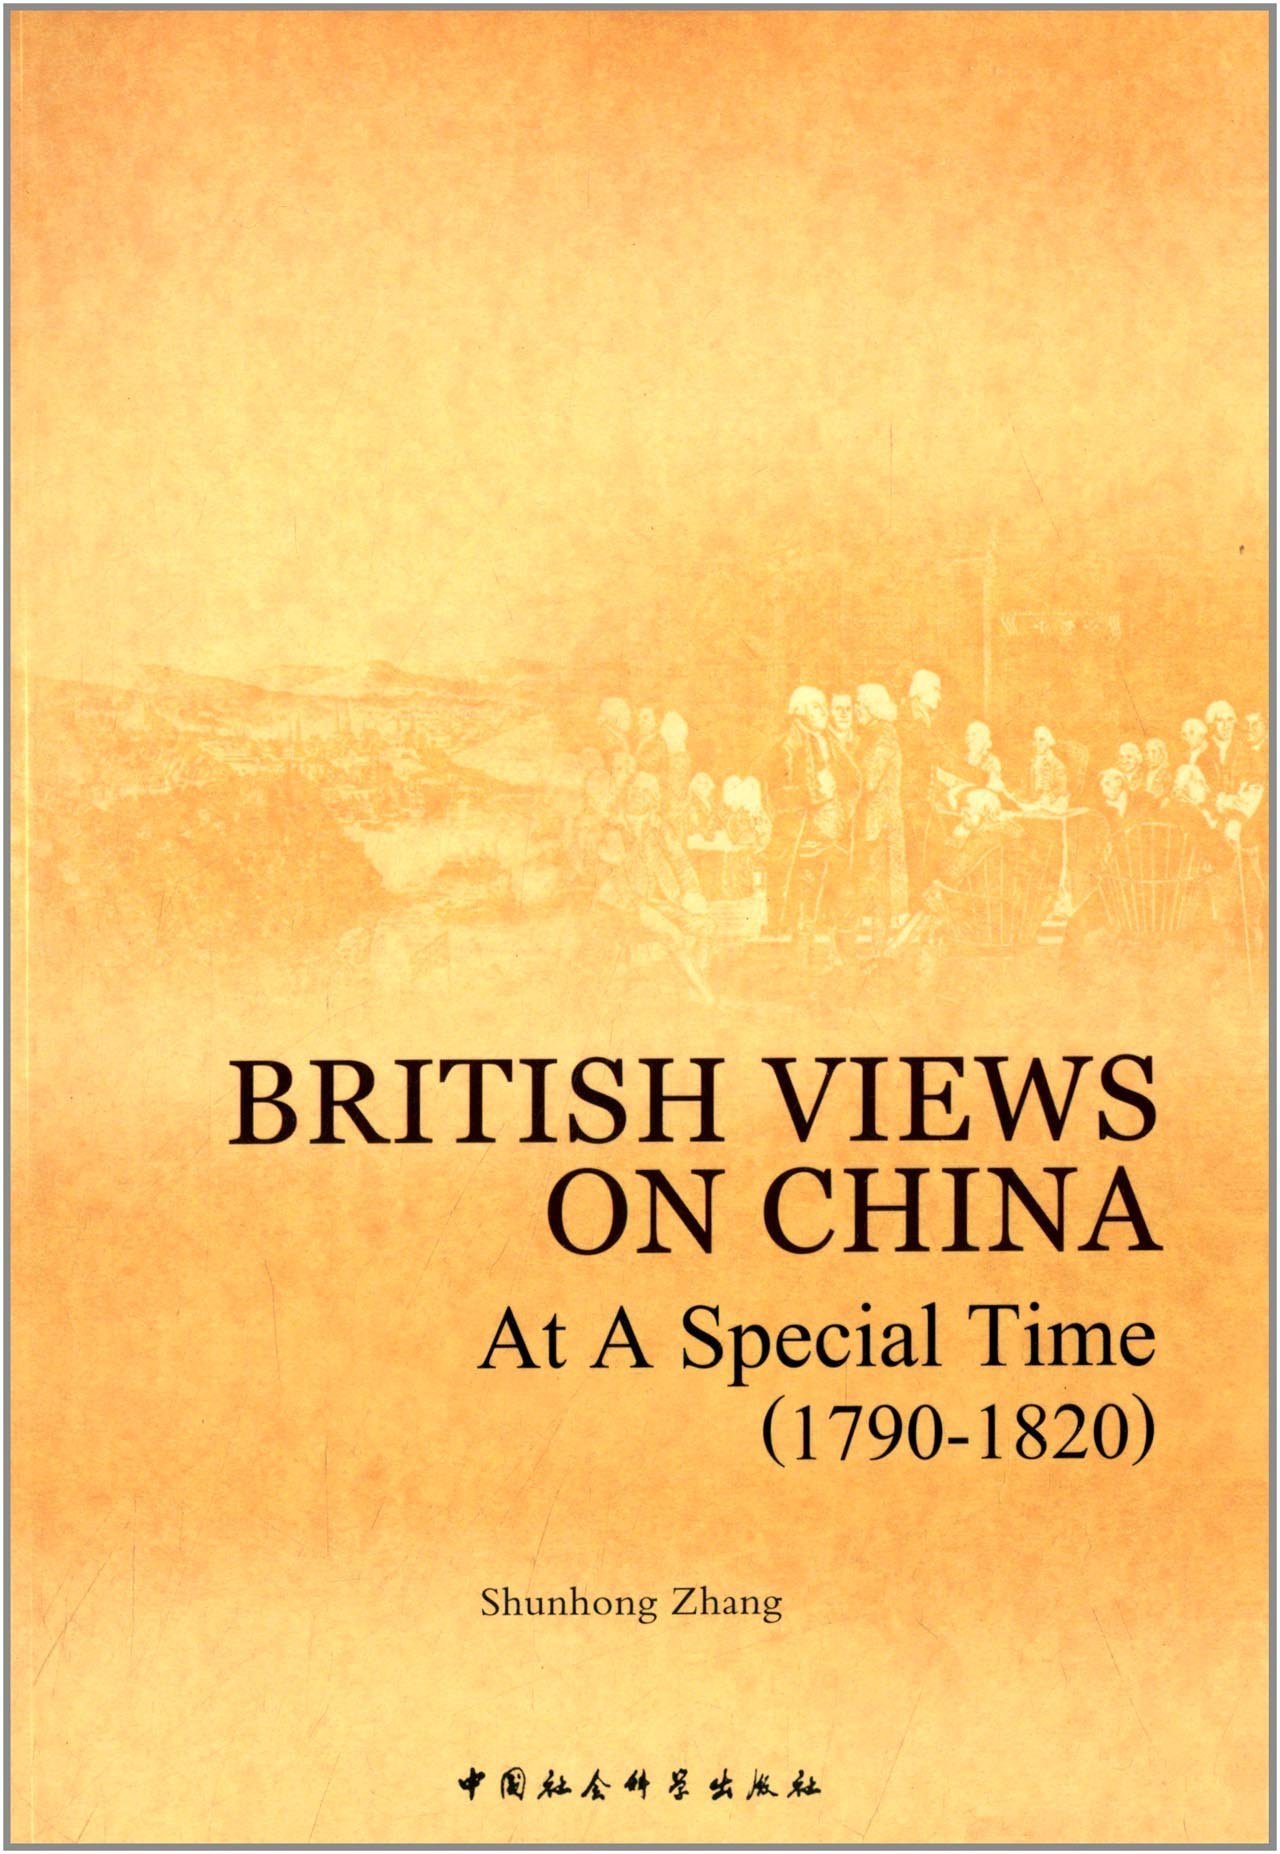 British Views on China at a Special Time (1790-1820)